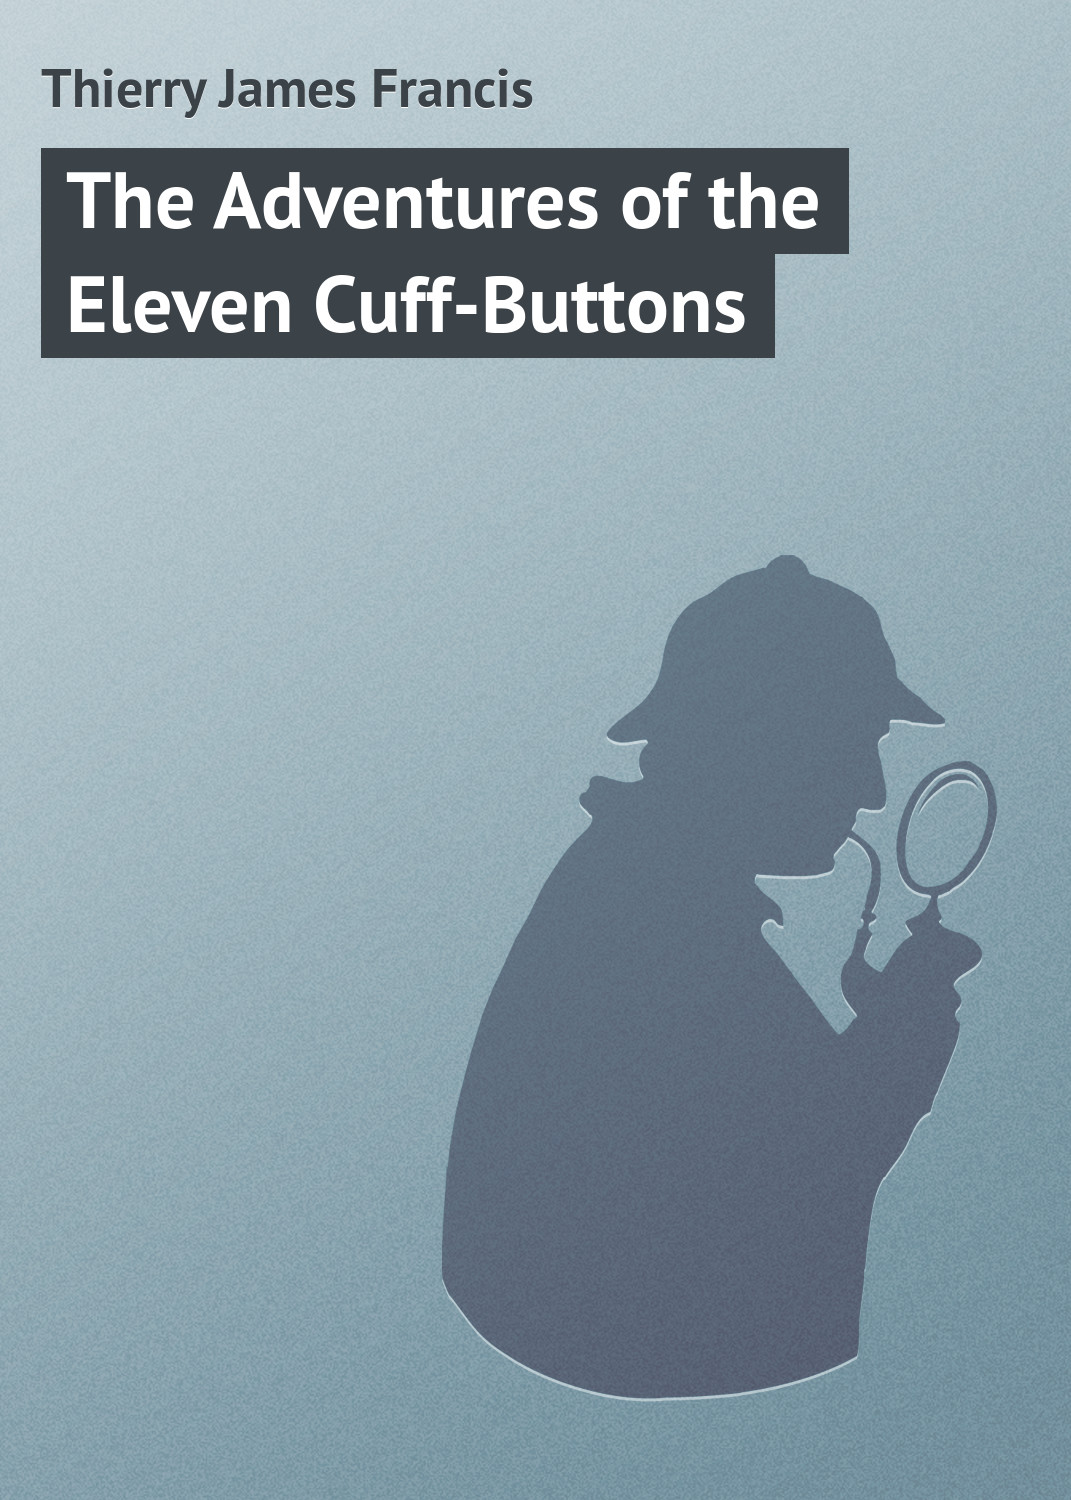 Thierry James Francis The Adventures of the Eleven Cuff-Buttons gasquet francis aidan the eve of the reformation